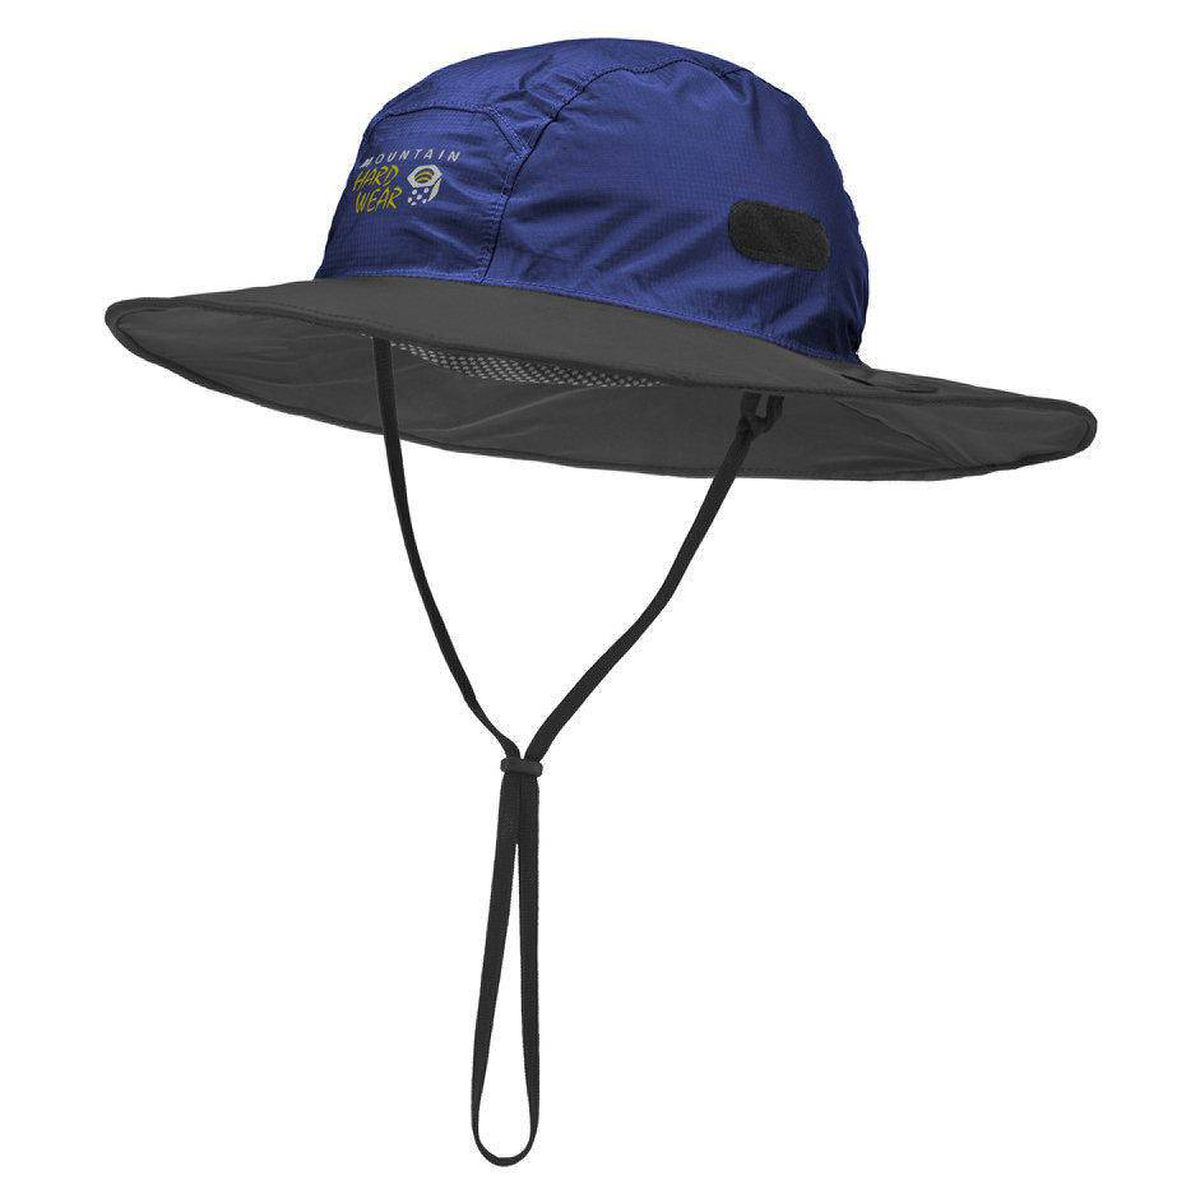 Dry Keep your head protected in rain and shine with Mountain Hardwear's Downpour Wide Brim Rain Hat. The generously sized top acts as a sun shield, while its waterproof Epic fabric (the same material that goes into the company's rain jackets) guards against seepage during heavy showers. Unexpected wind gusts won't be a threat thanks to an adjustable draw cord chinstrap. $49.99; liveoutthere.com